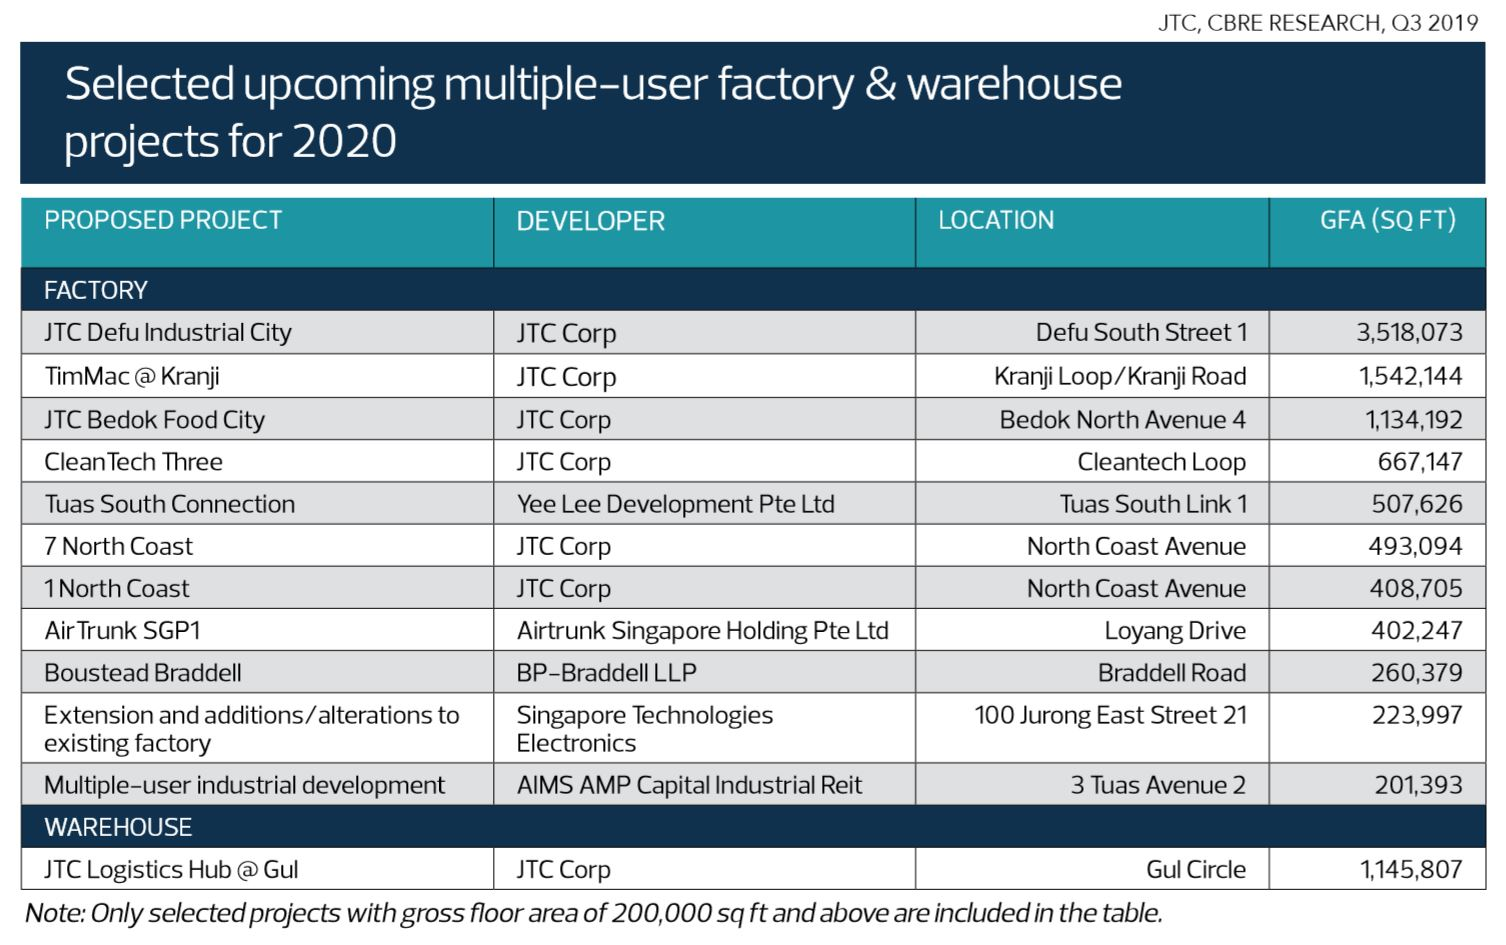 Selected upcoming multiple-user factory & warehouse projects for 2020